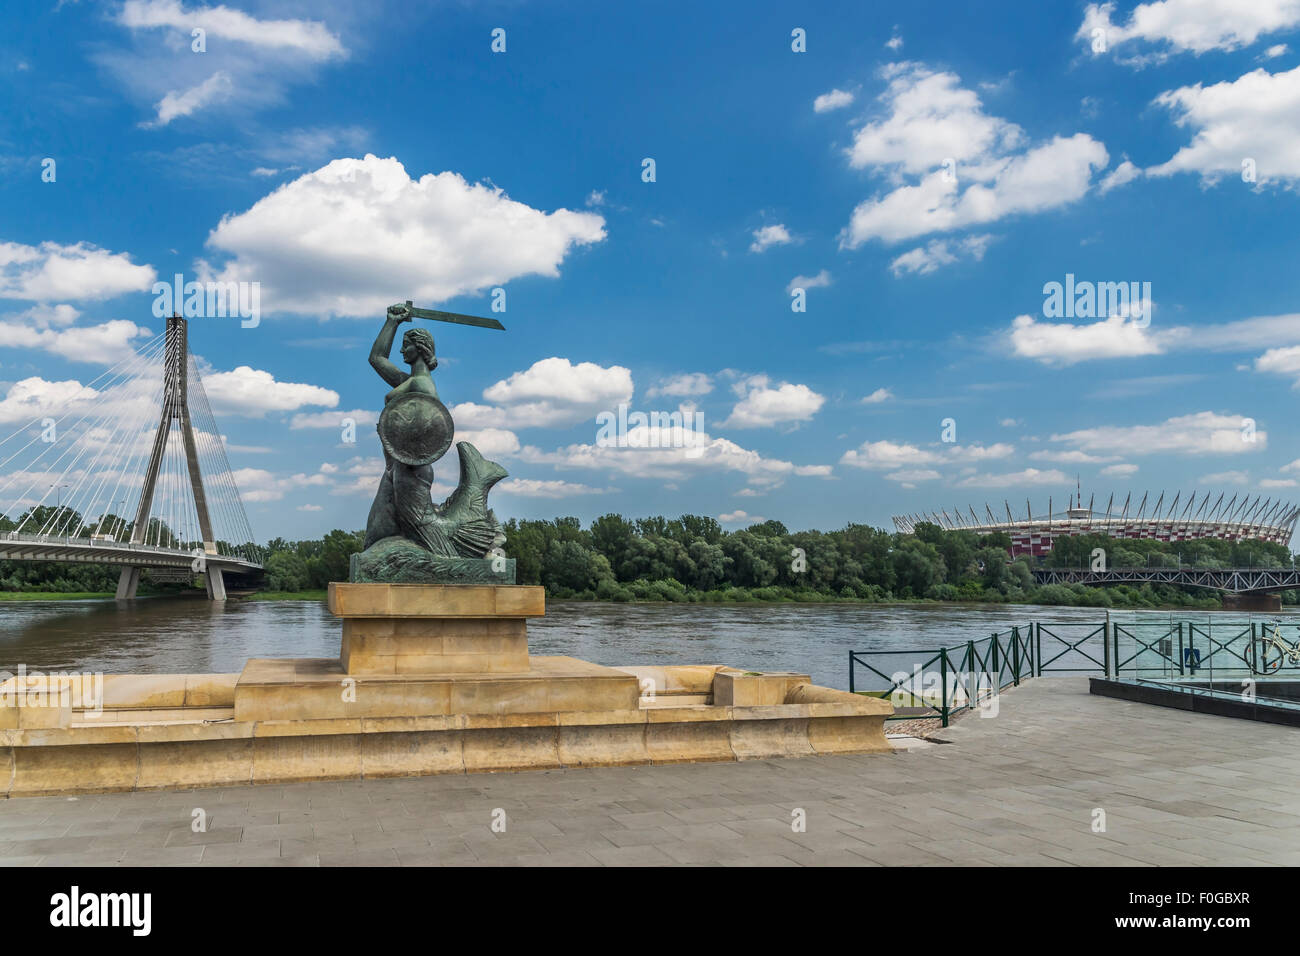 The statue of the Mermaid of Warsaw is located on the left bank of the Vistula River, Warsaw, Masovian, Poland, - Stock Image